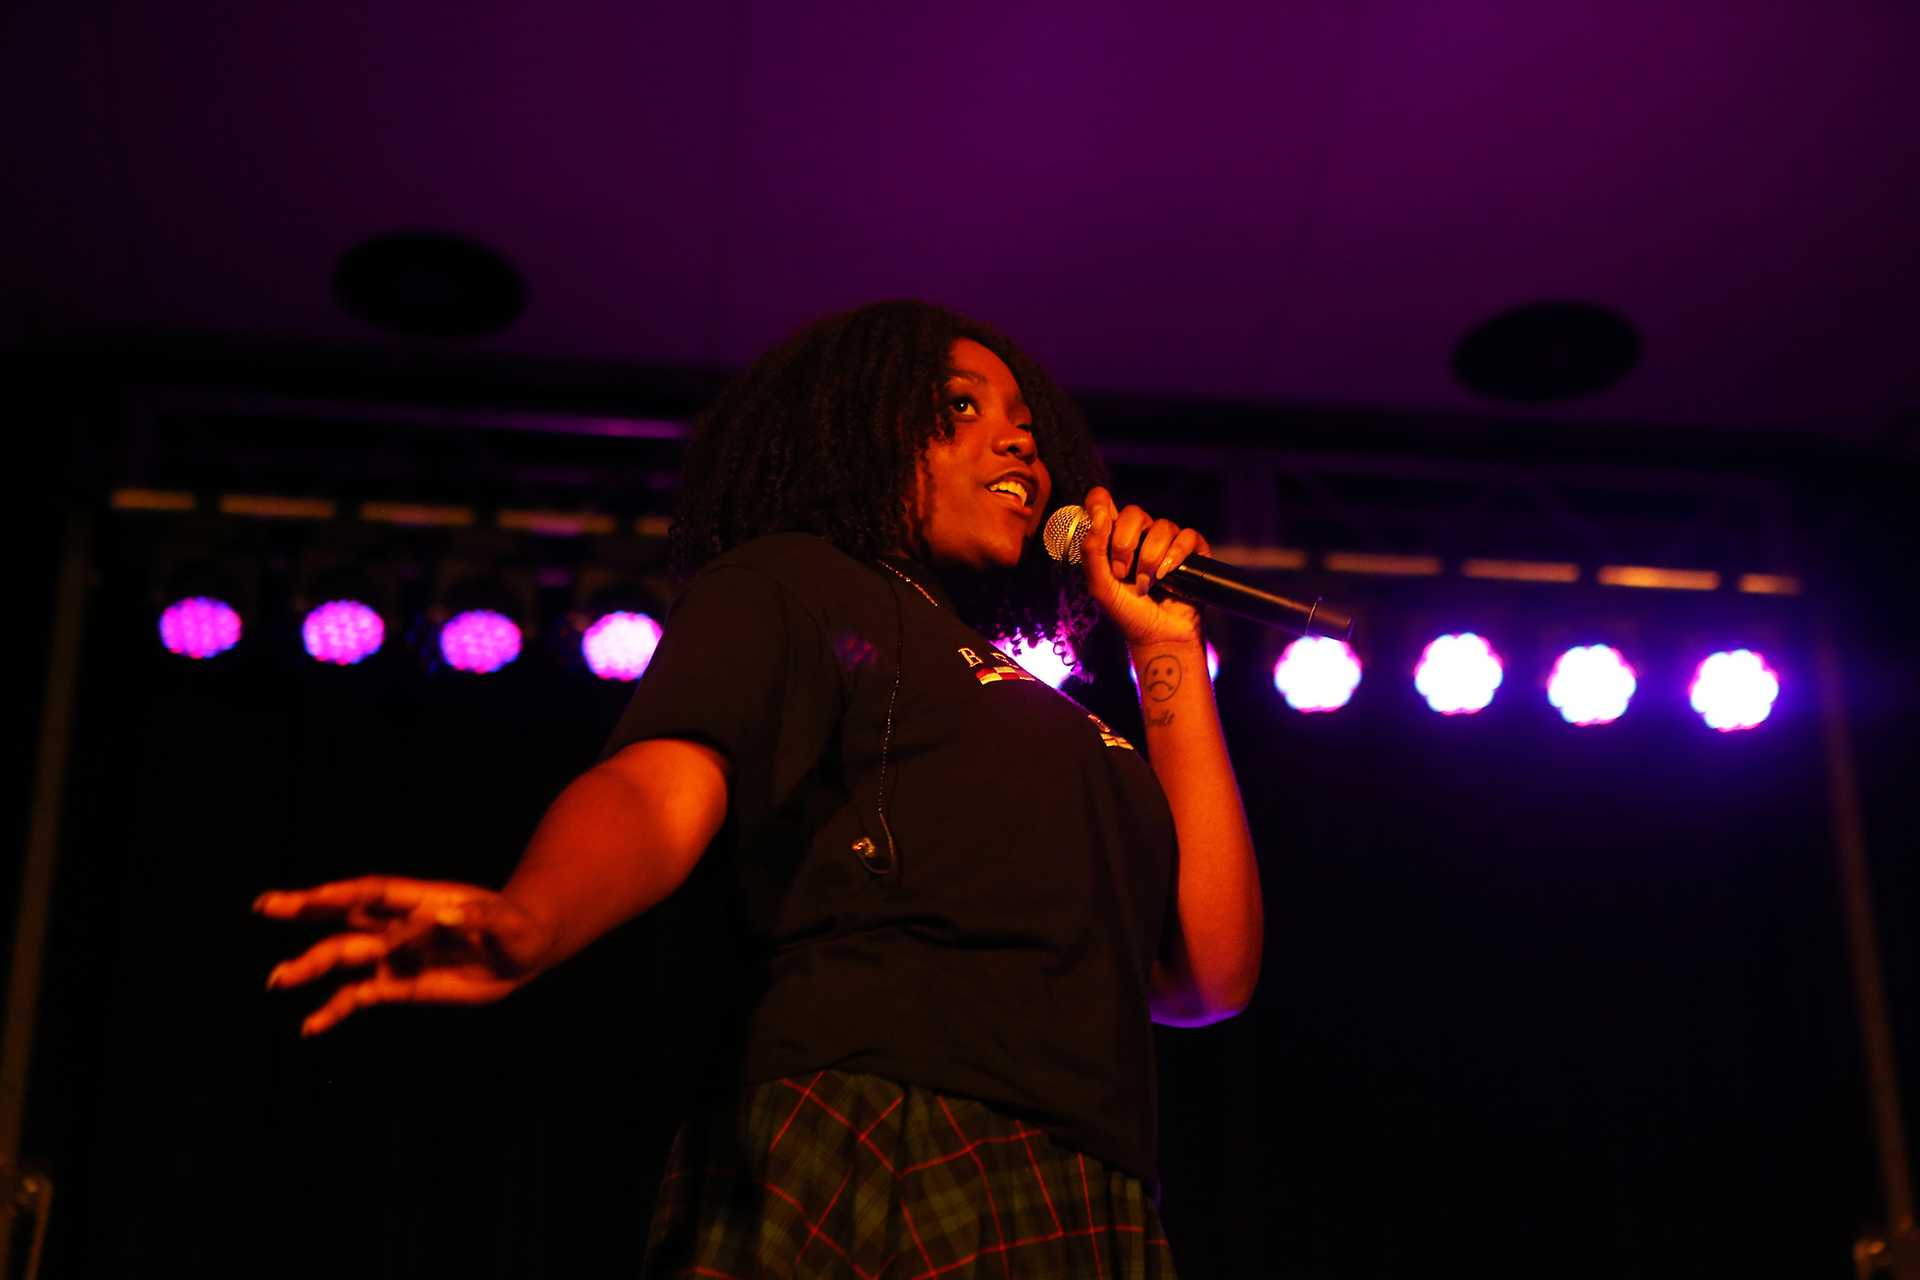 NoName performs during the Telefone Tour on Friday, Feb. 24, 2017 in the Second Floor Ballroom of the Iowa Memorial Union. Telefone is NoName's debut mixtape, released on July 31, 2016. (The Daily Iowan/Joshua Housing)